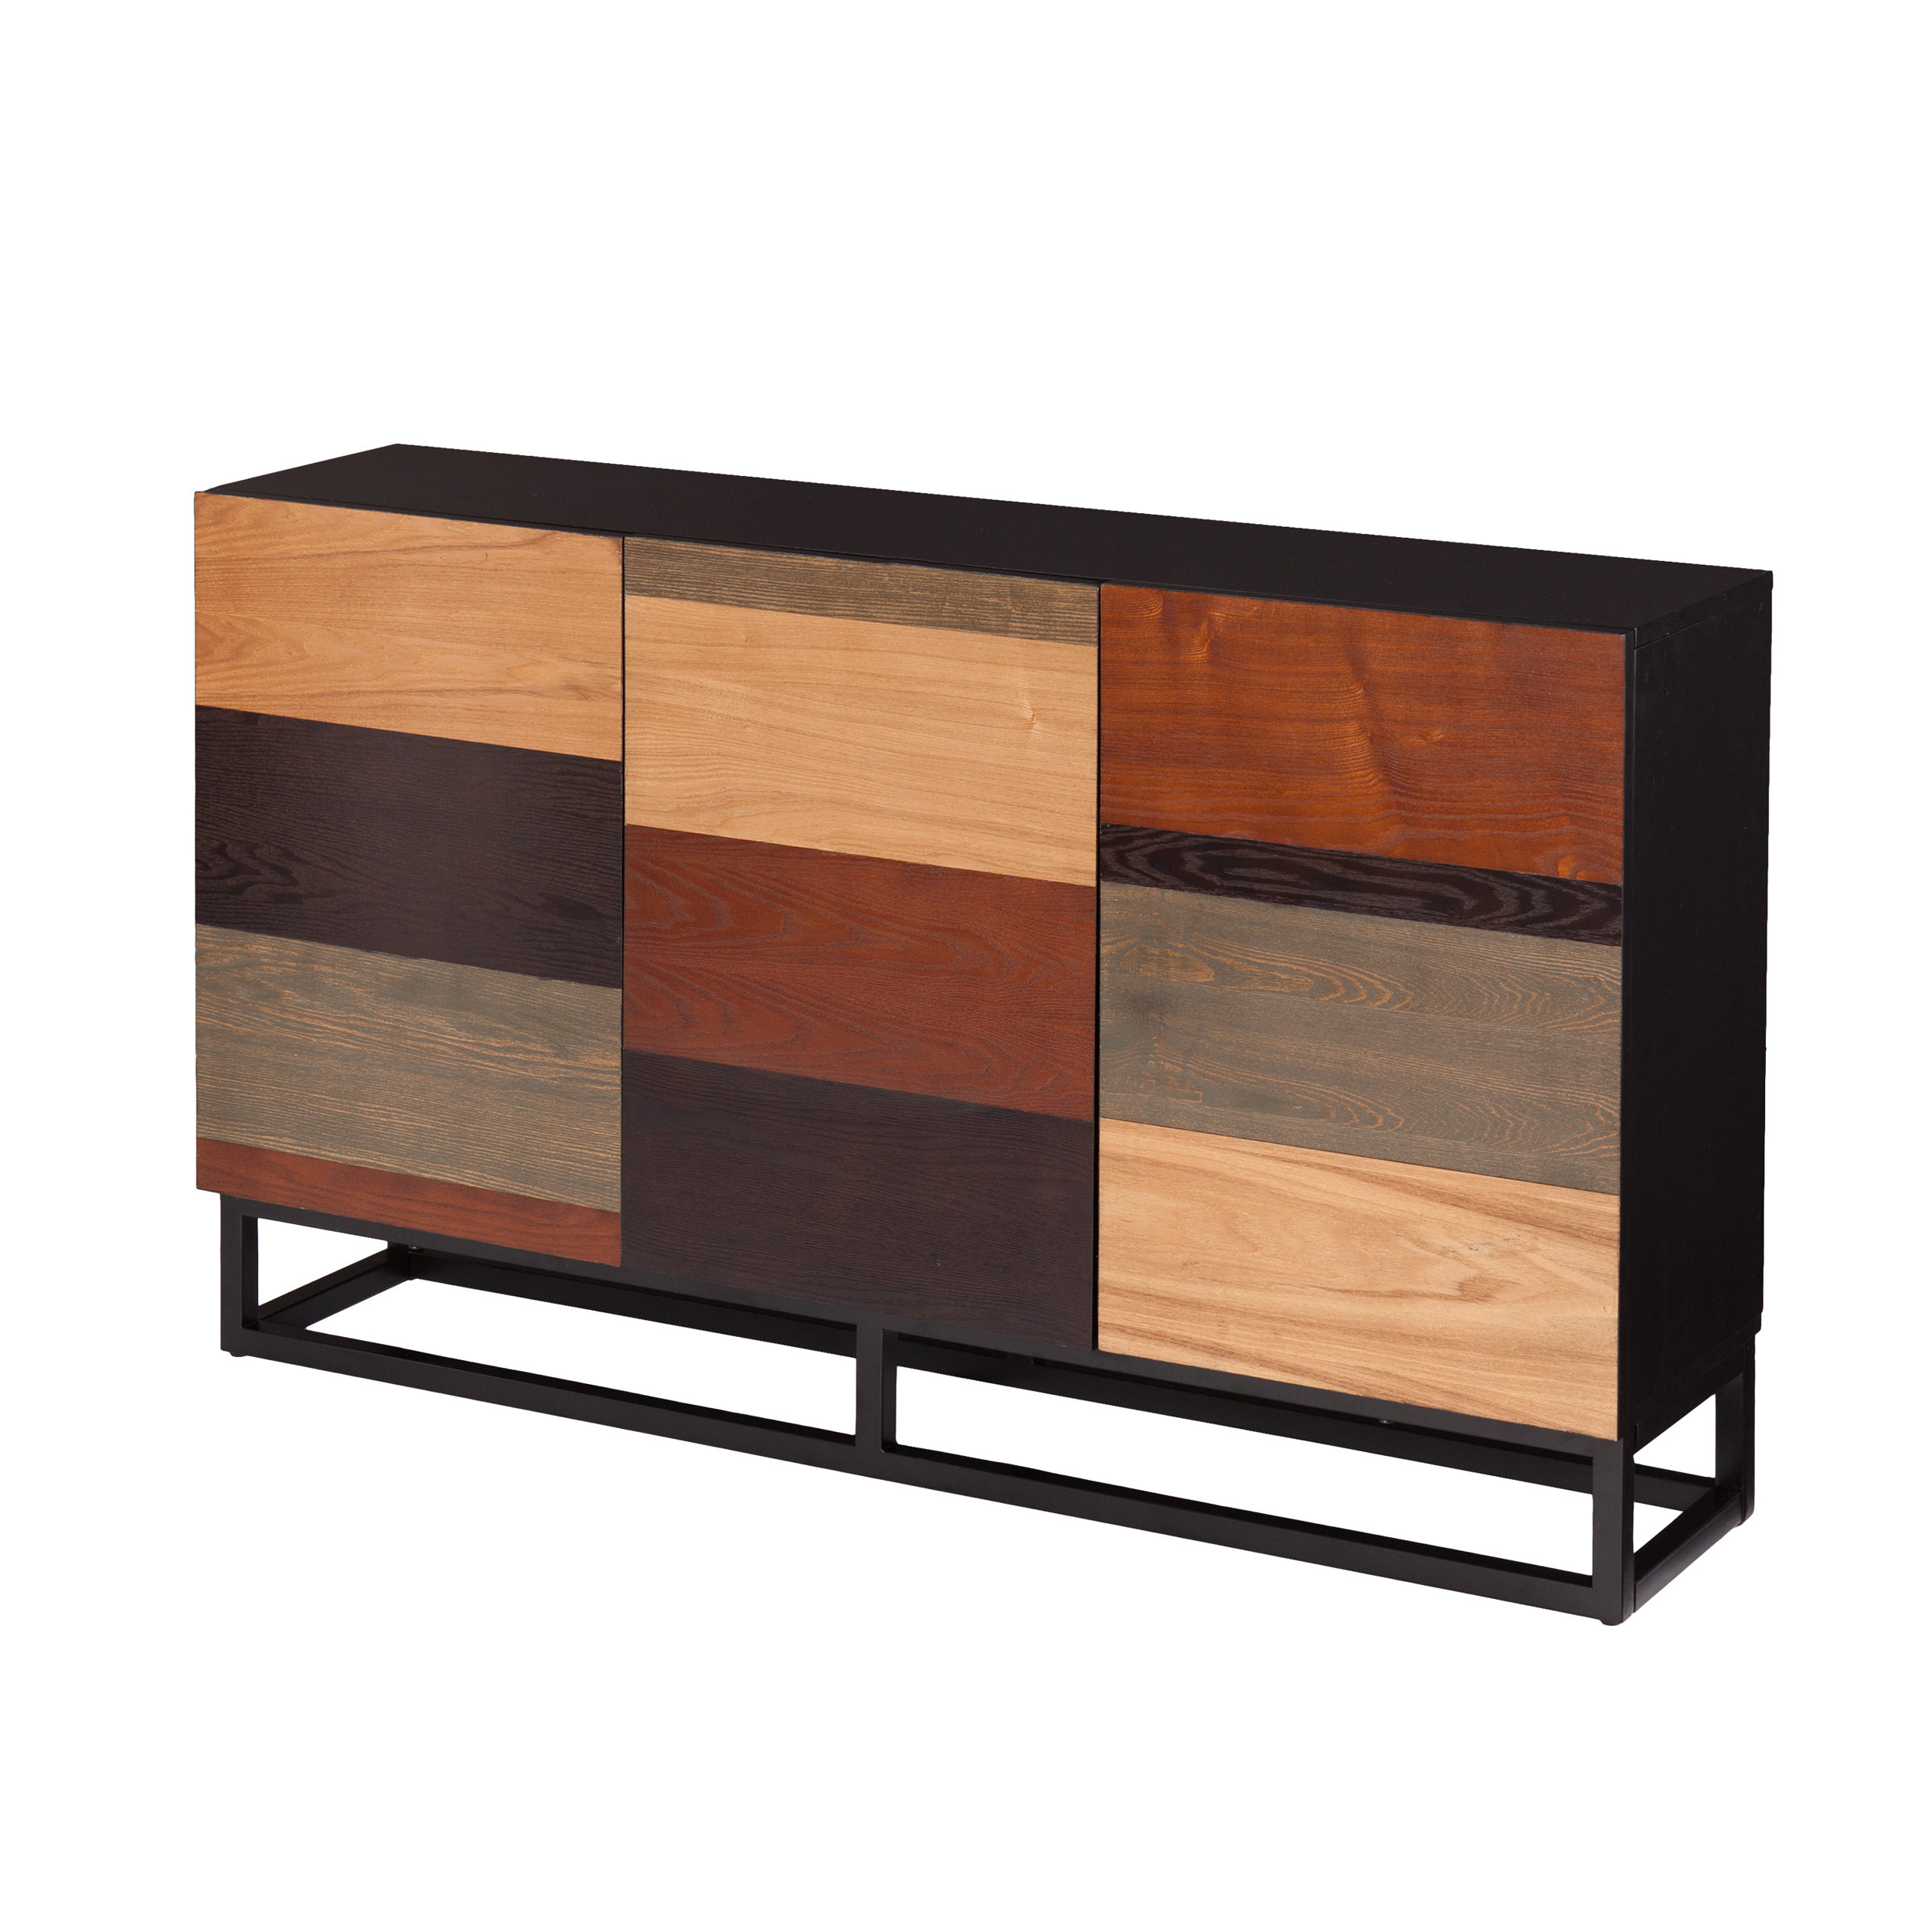 Remington Sideboard Within Popular Remington Sideboards (Gallery 1 of 20)